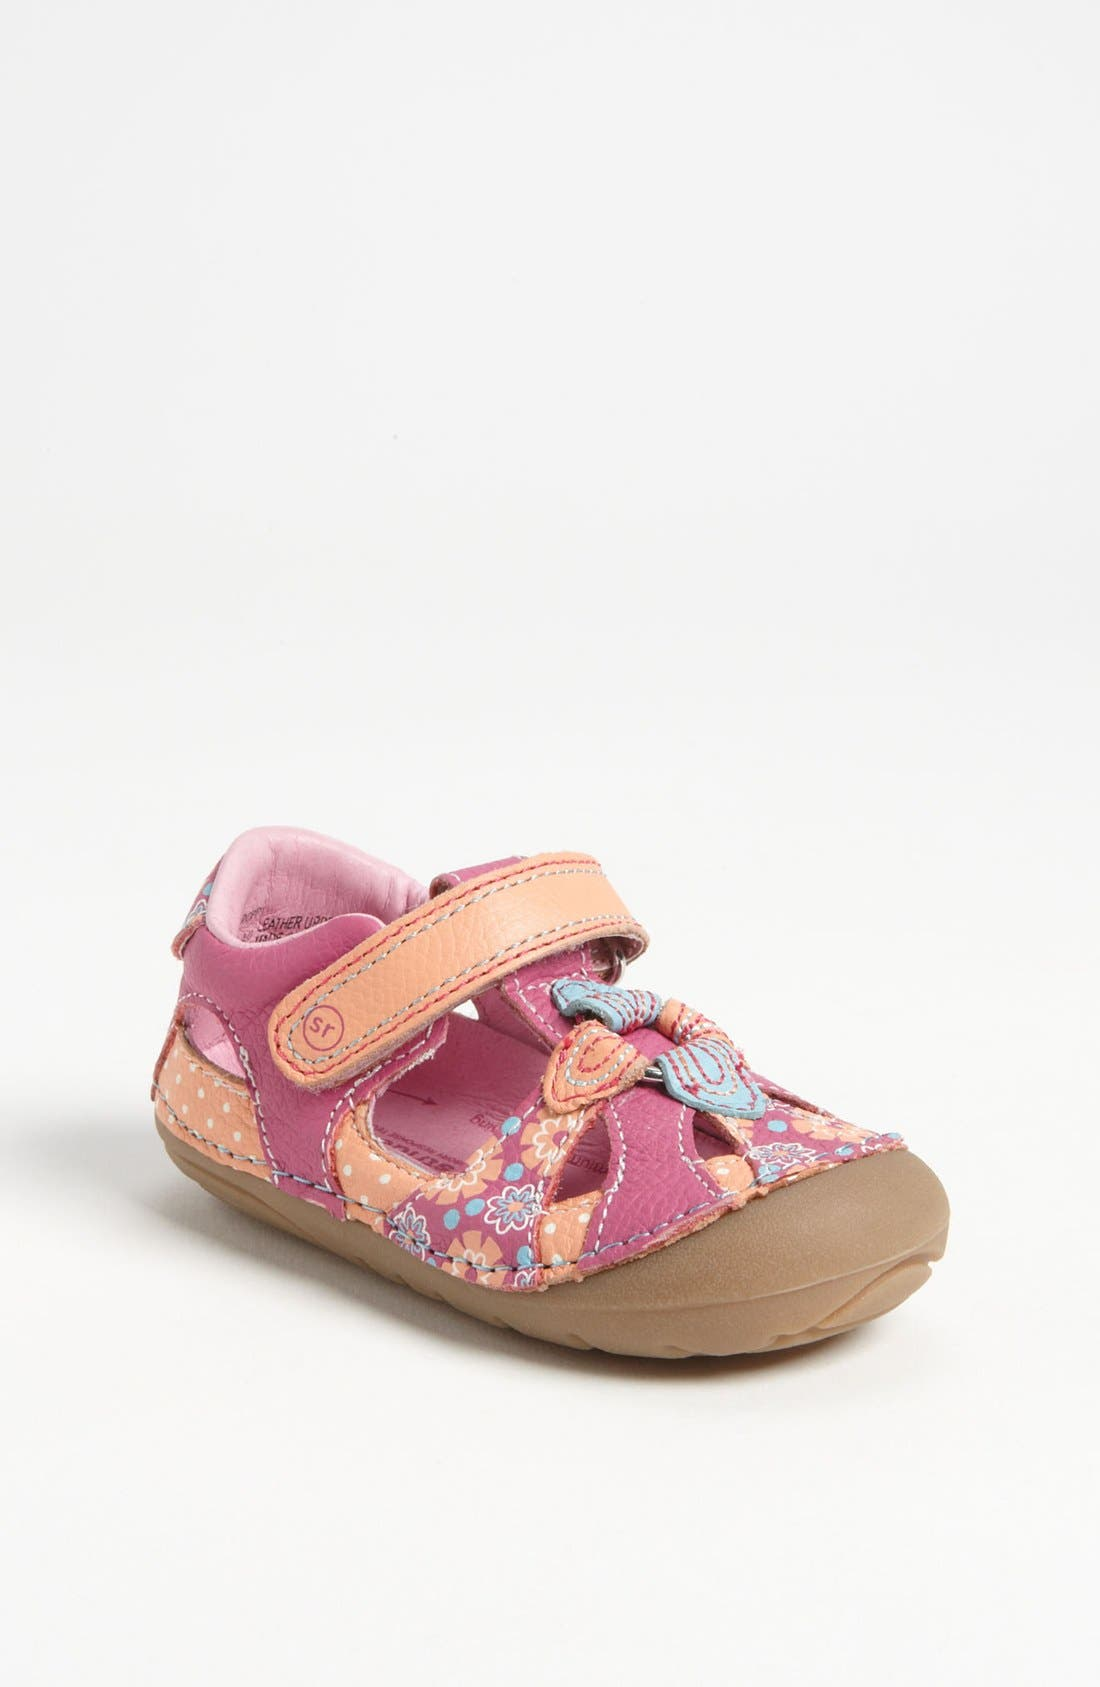 Main Image - Stride Rite 'Poppy' Sandal (Baby & Walker)